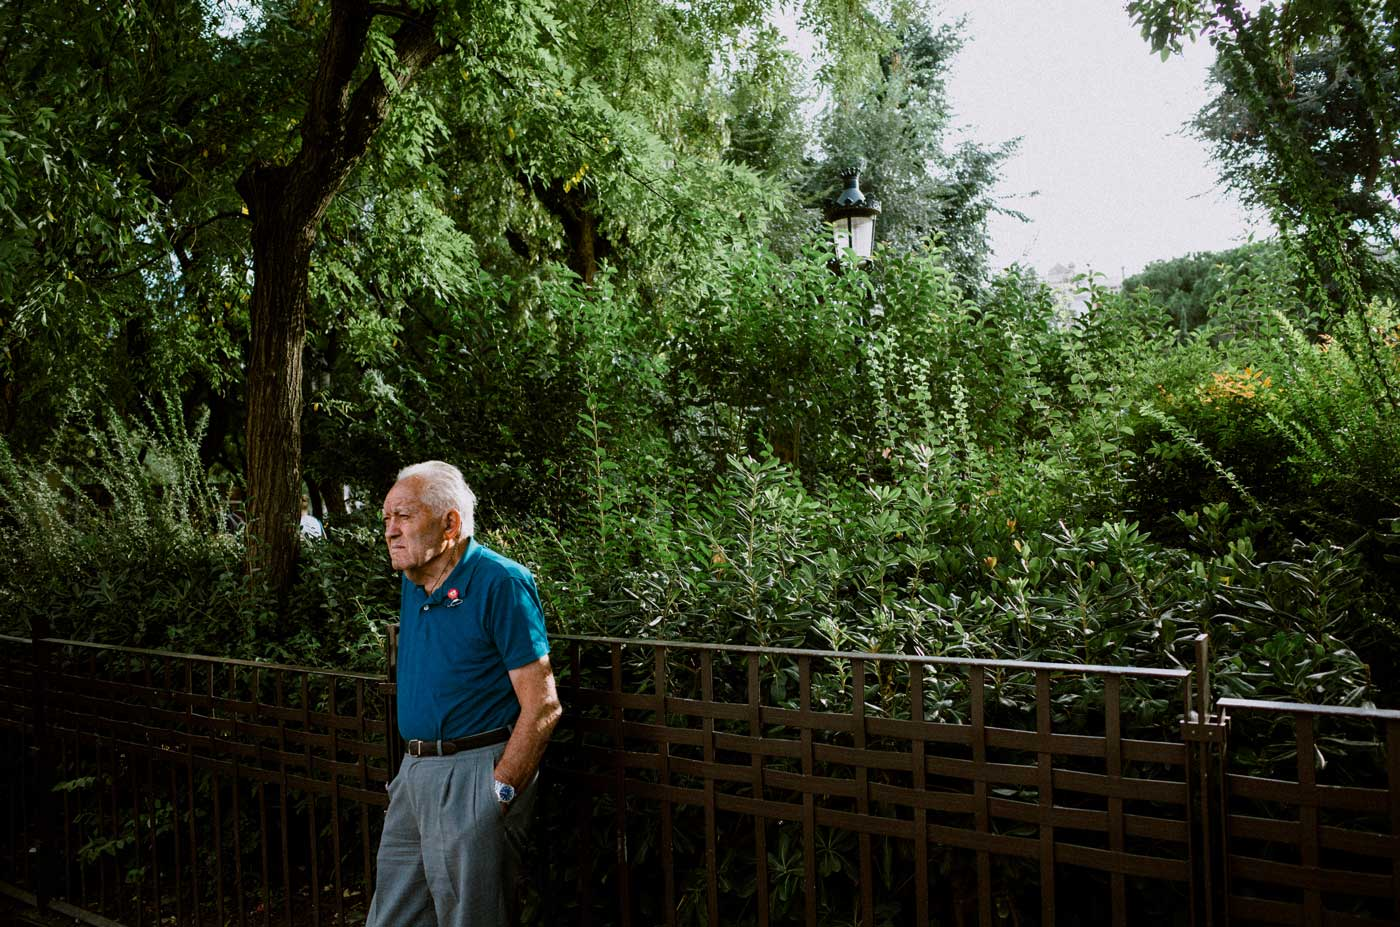 ricoh-gr-II-III-review-camera-point-and-shoot-28mm-park-in-barcelona-old-man-portrait-perfect-light-tree